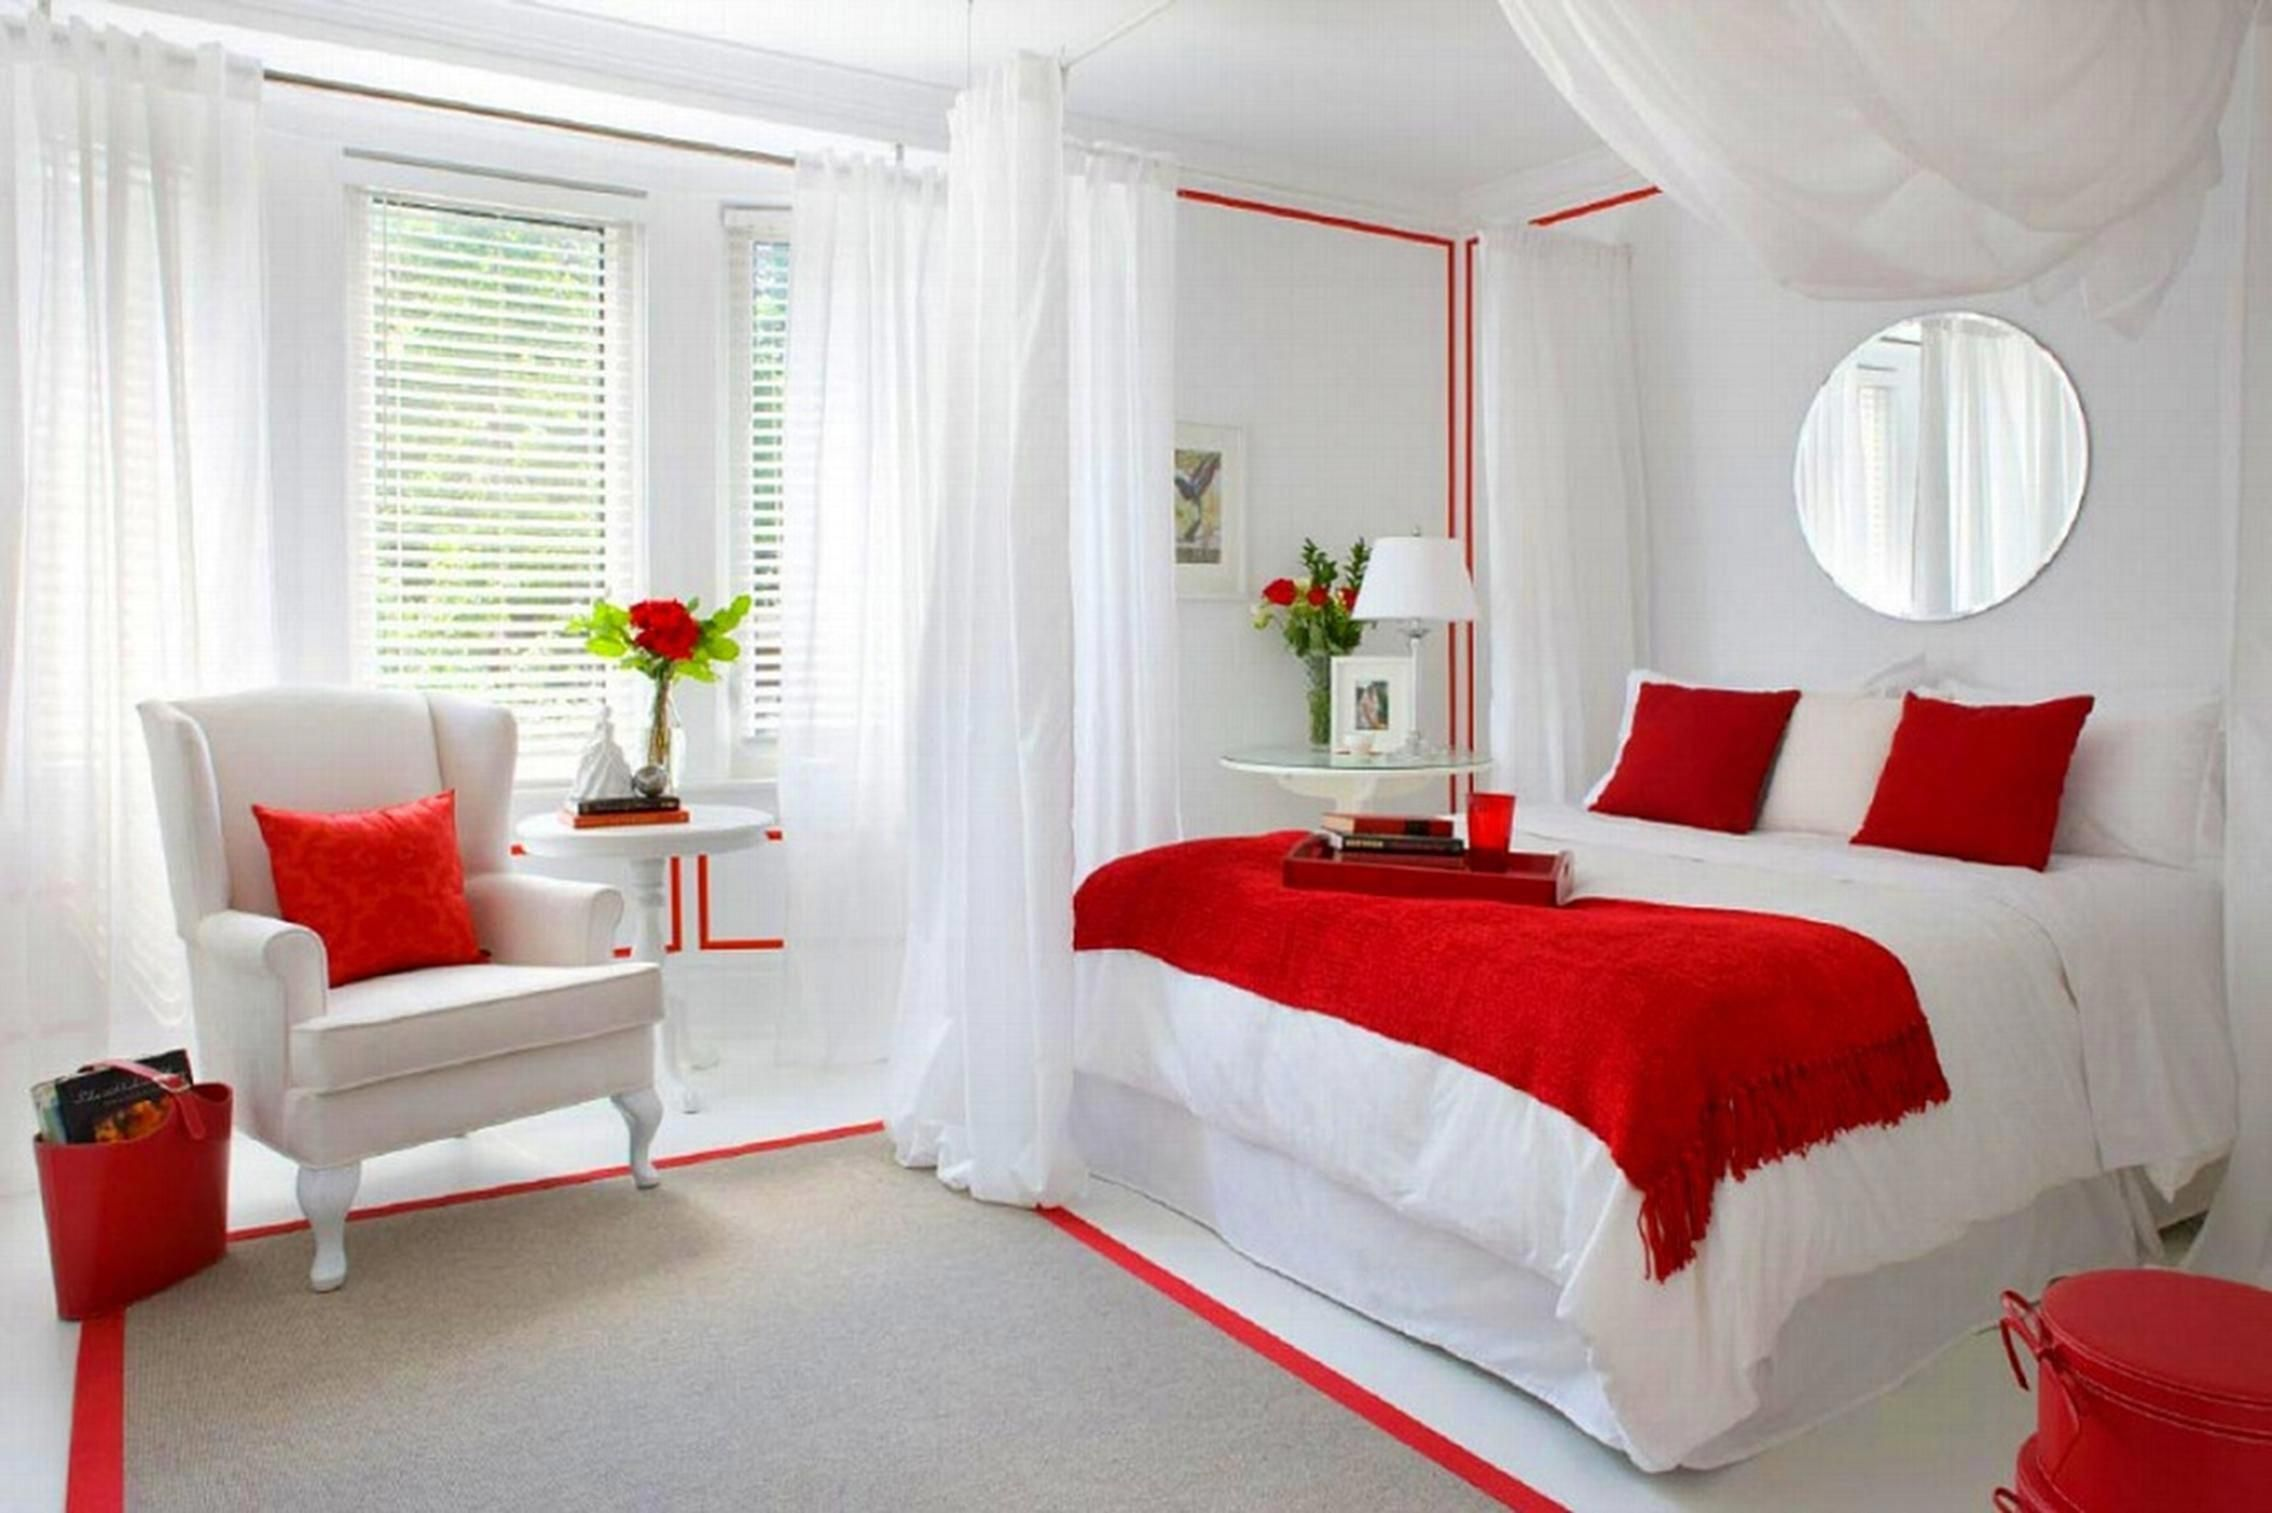 30 Inspiration Picture Of Couple Bedroom Ideas Couple Bedroom Ideas 36004 Bedroom Deco Red Bedroom Design Romantic Bedroom Design Bedroom Designs For Couples